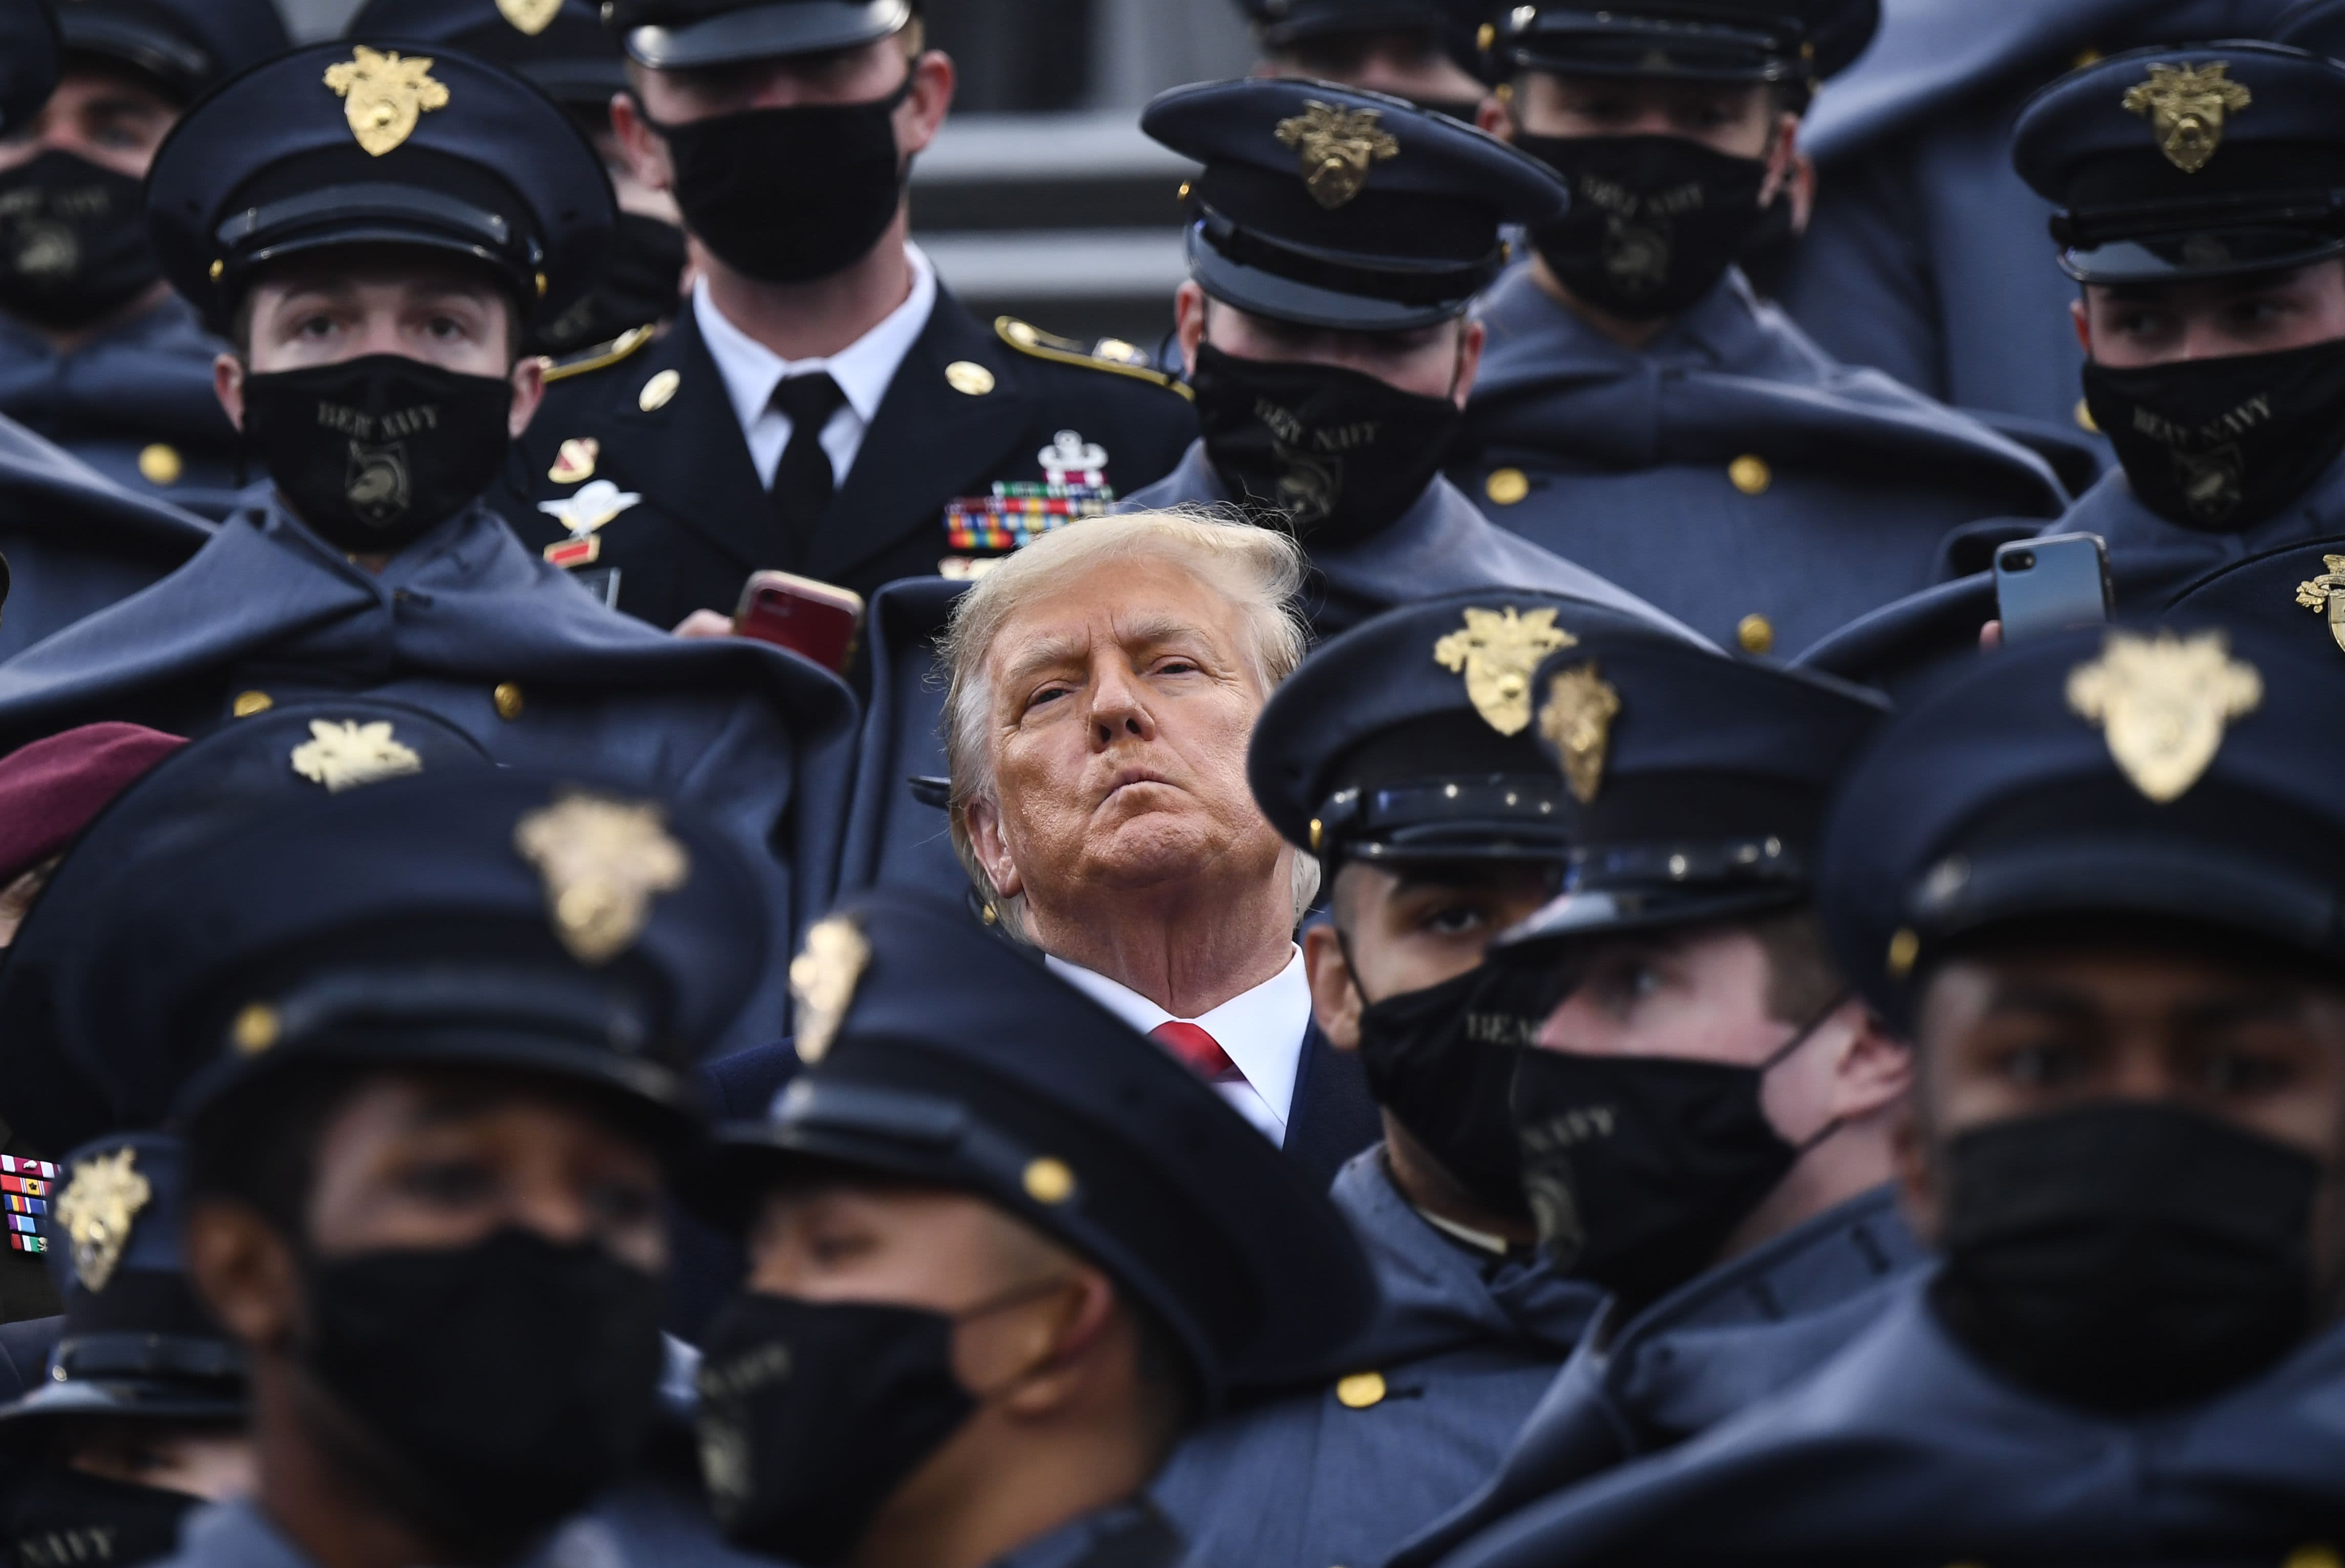 Trump does not wear mask at Army-Navy game despite Covid concerns